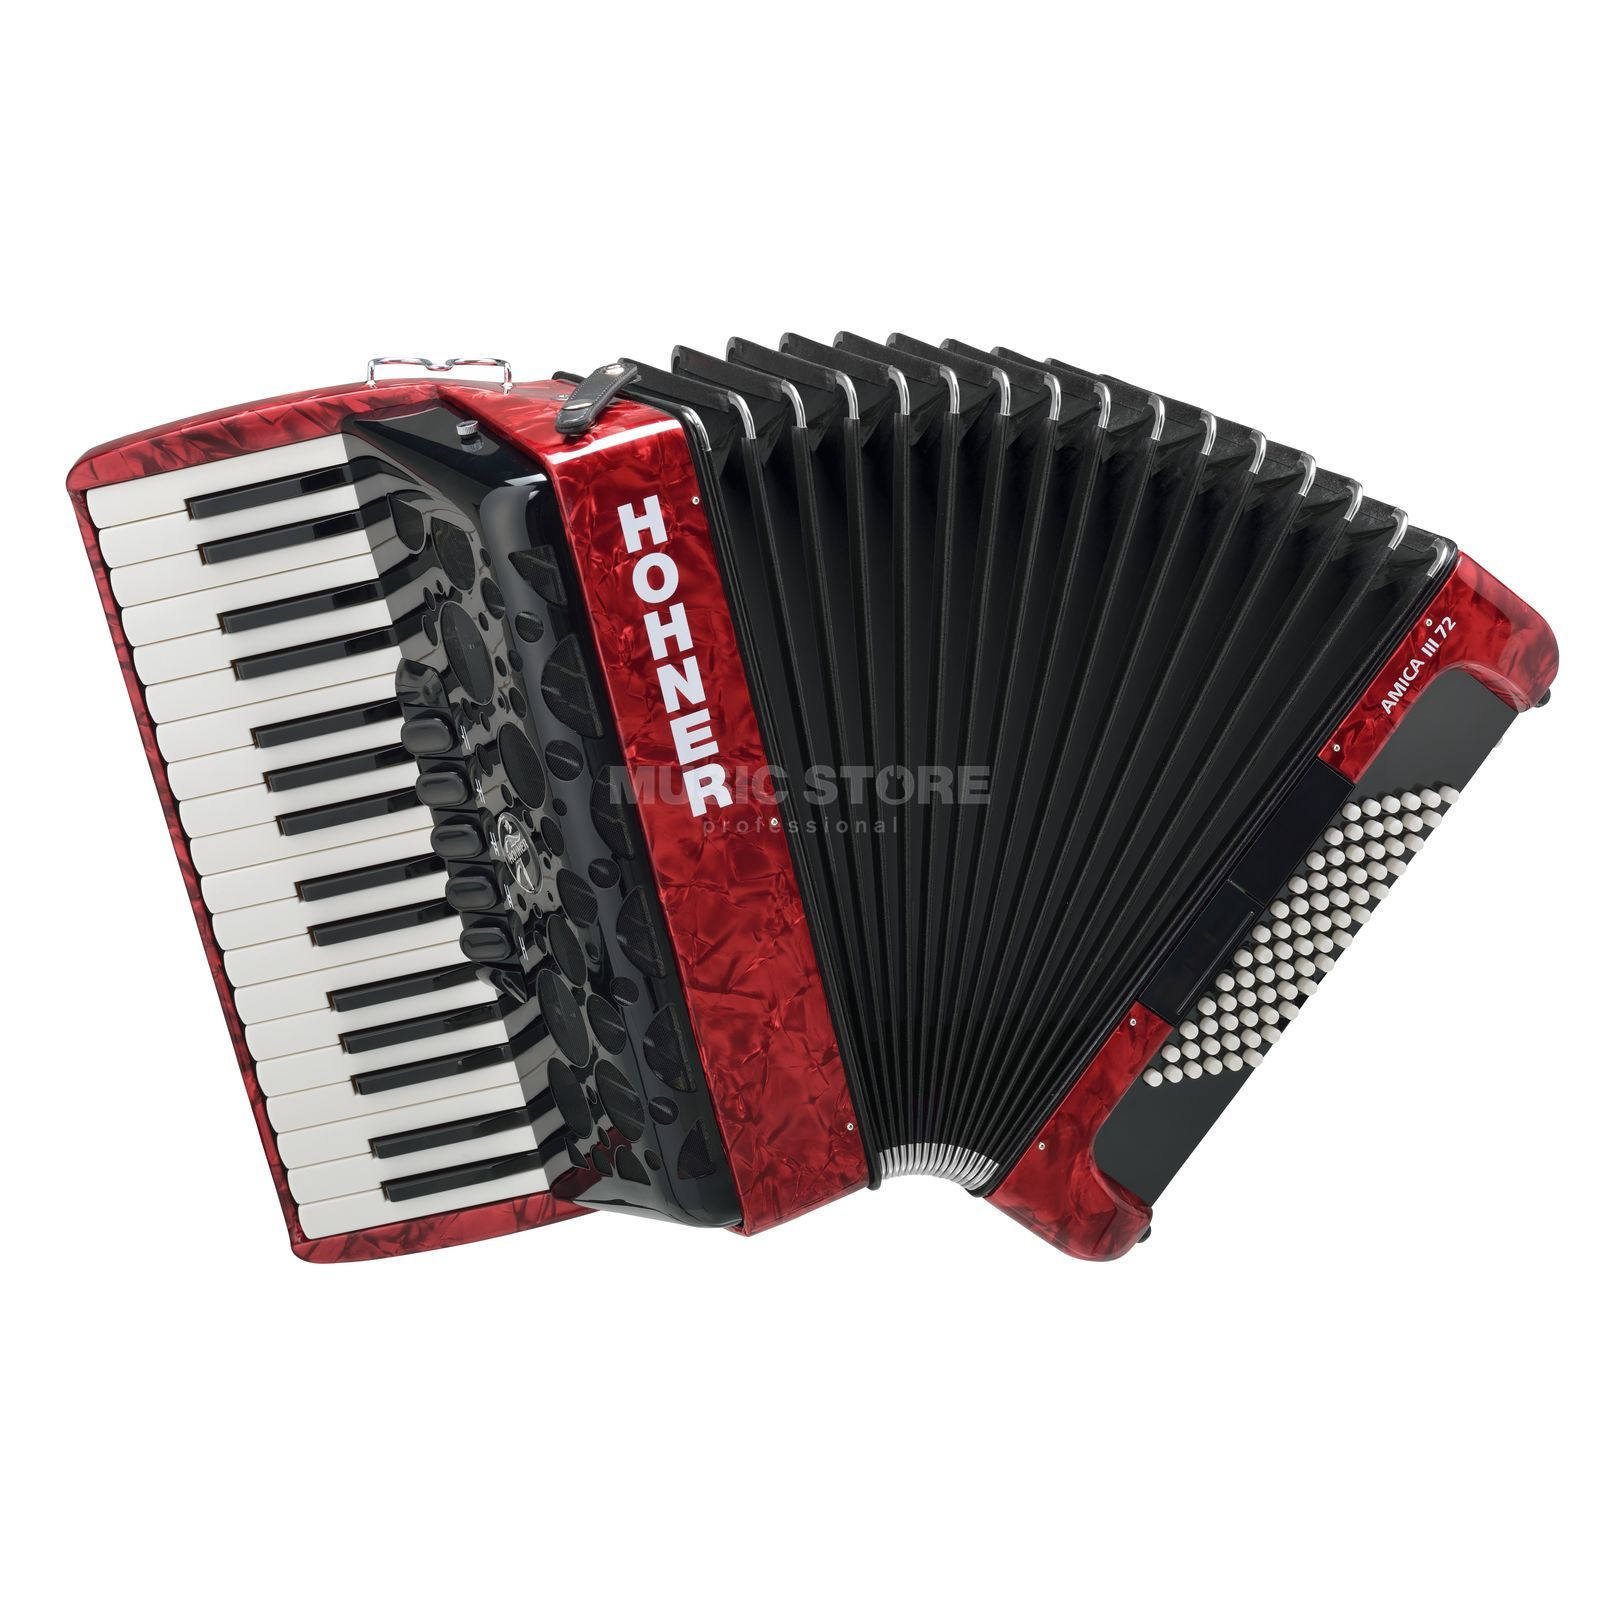 Hohner Accordion Piano Style Amica 72 basses, III choirs, red Produktbillede